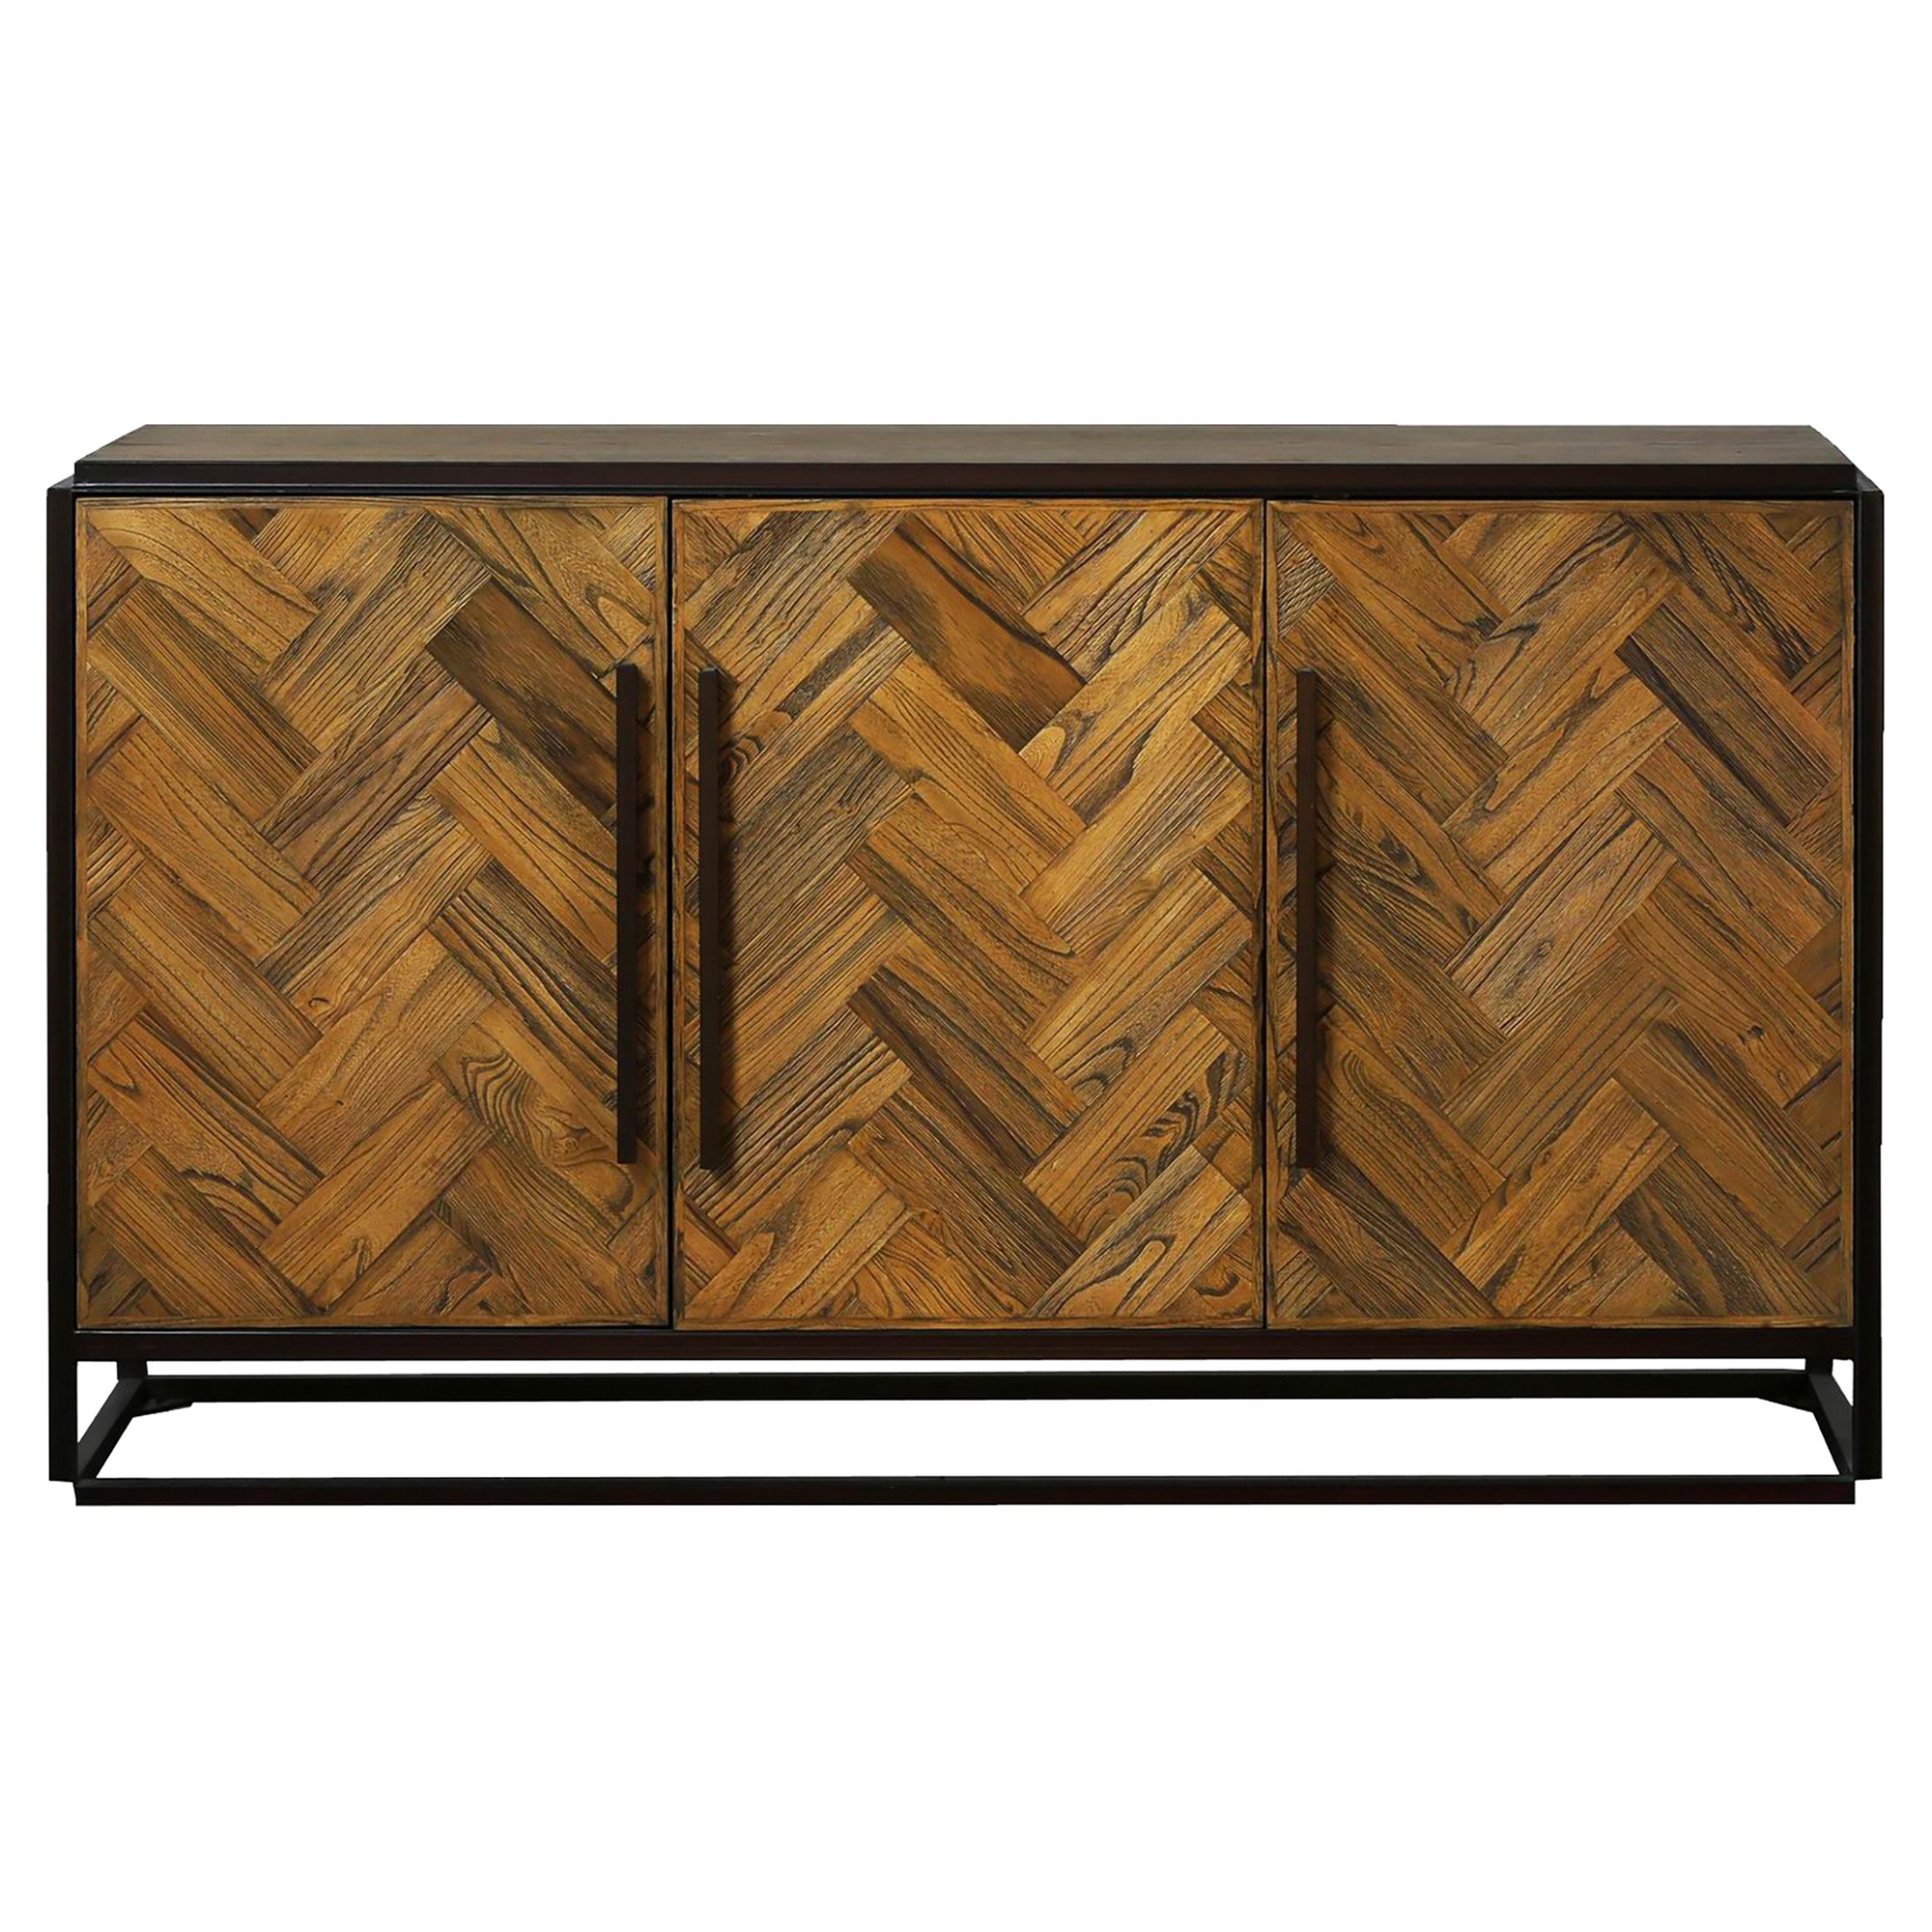 Parquet Reclaimed Elm & Metal 3 Door Sideboard, 152cm